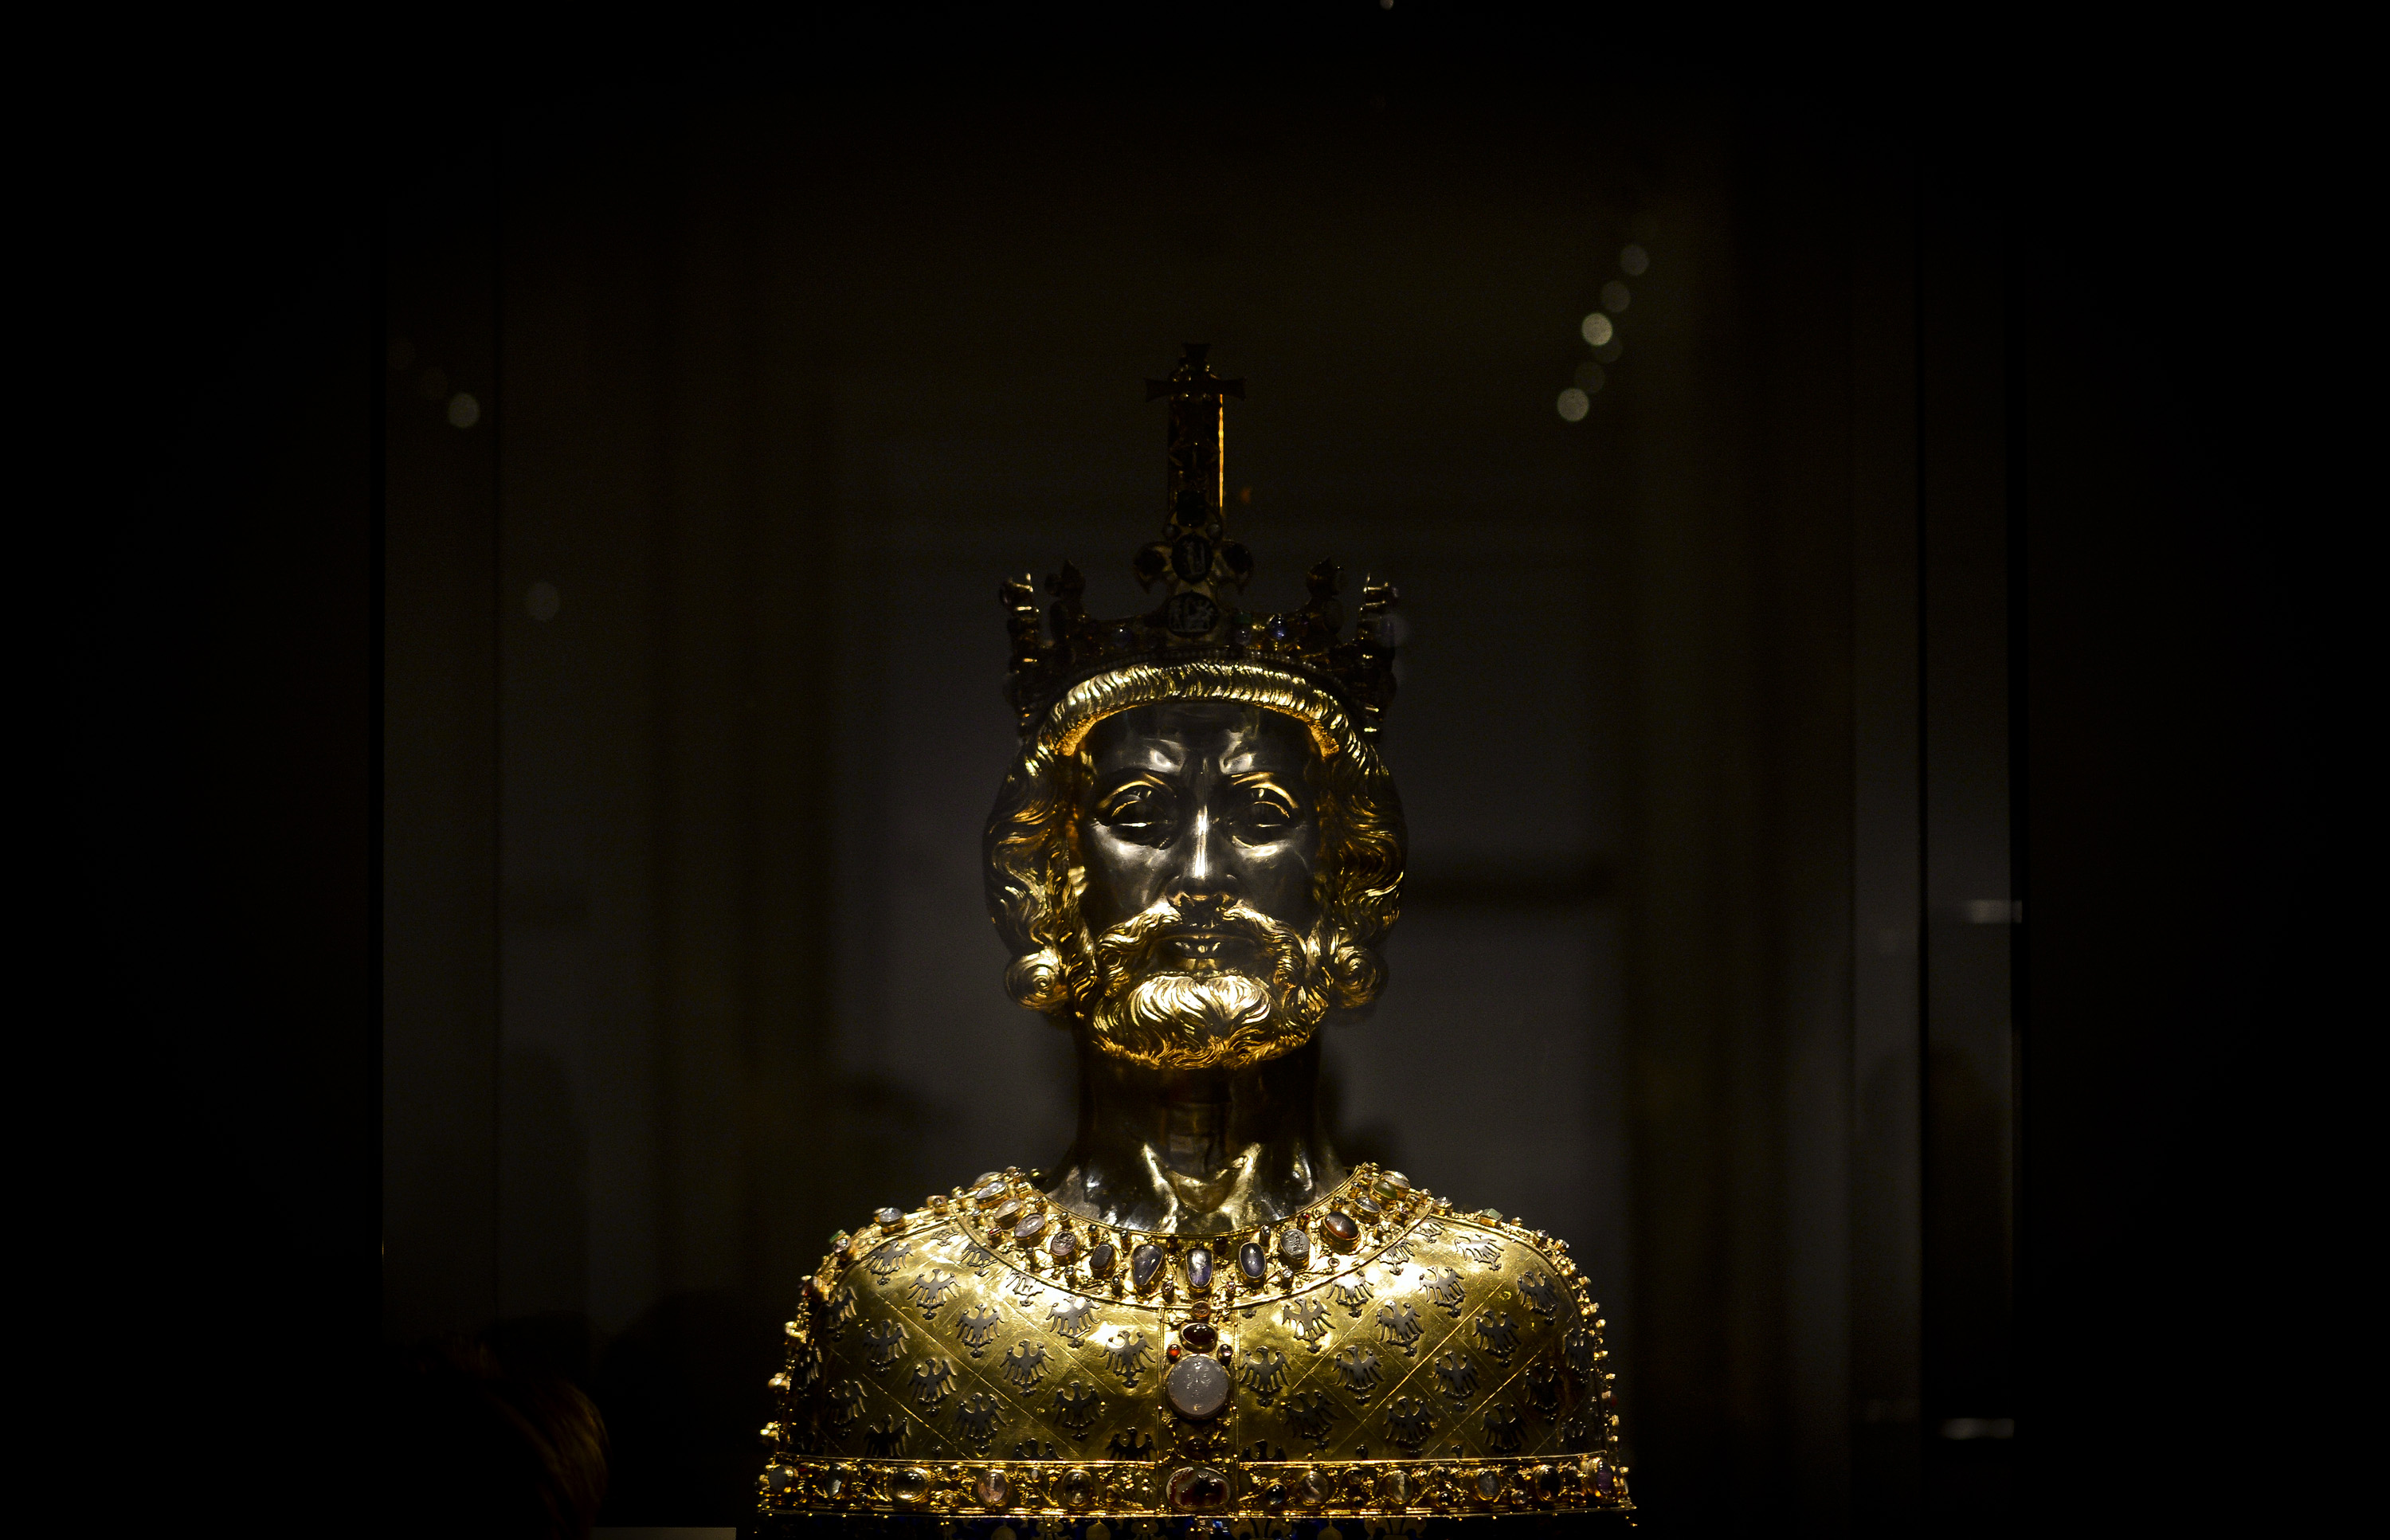 "A bust of Charlemagne at the exhibition ""Charlemagne: Power, Art, Treasures"" (in German: ""Karl der Grosse: Macht, Kunst, Schaetze"") during the press day on June 18, 2014 in Aachen, Germany. The three-part exhibition is among the biggest events this year commemorating the 1200th anniversary of Charlemagne's death. Charlemagne, also called Charles the Great, was the first pan-western European emperor since the collapse of the Roman Empire and ruled over territories that include modern-day France, Germany, Switzerland, Belgium, Holland and northern Italy.  (Photo by Sascha Schuermann/Getty Images)"